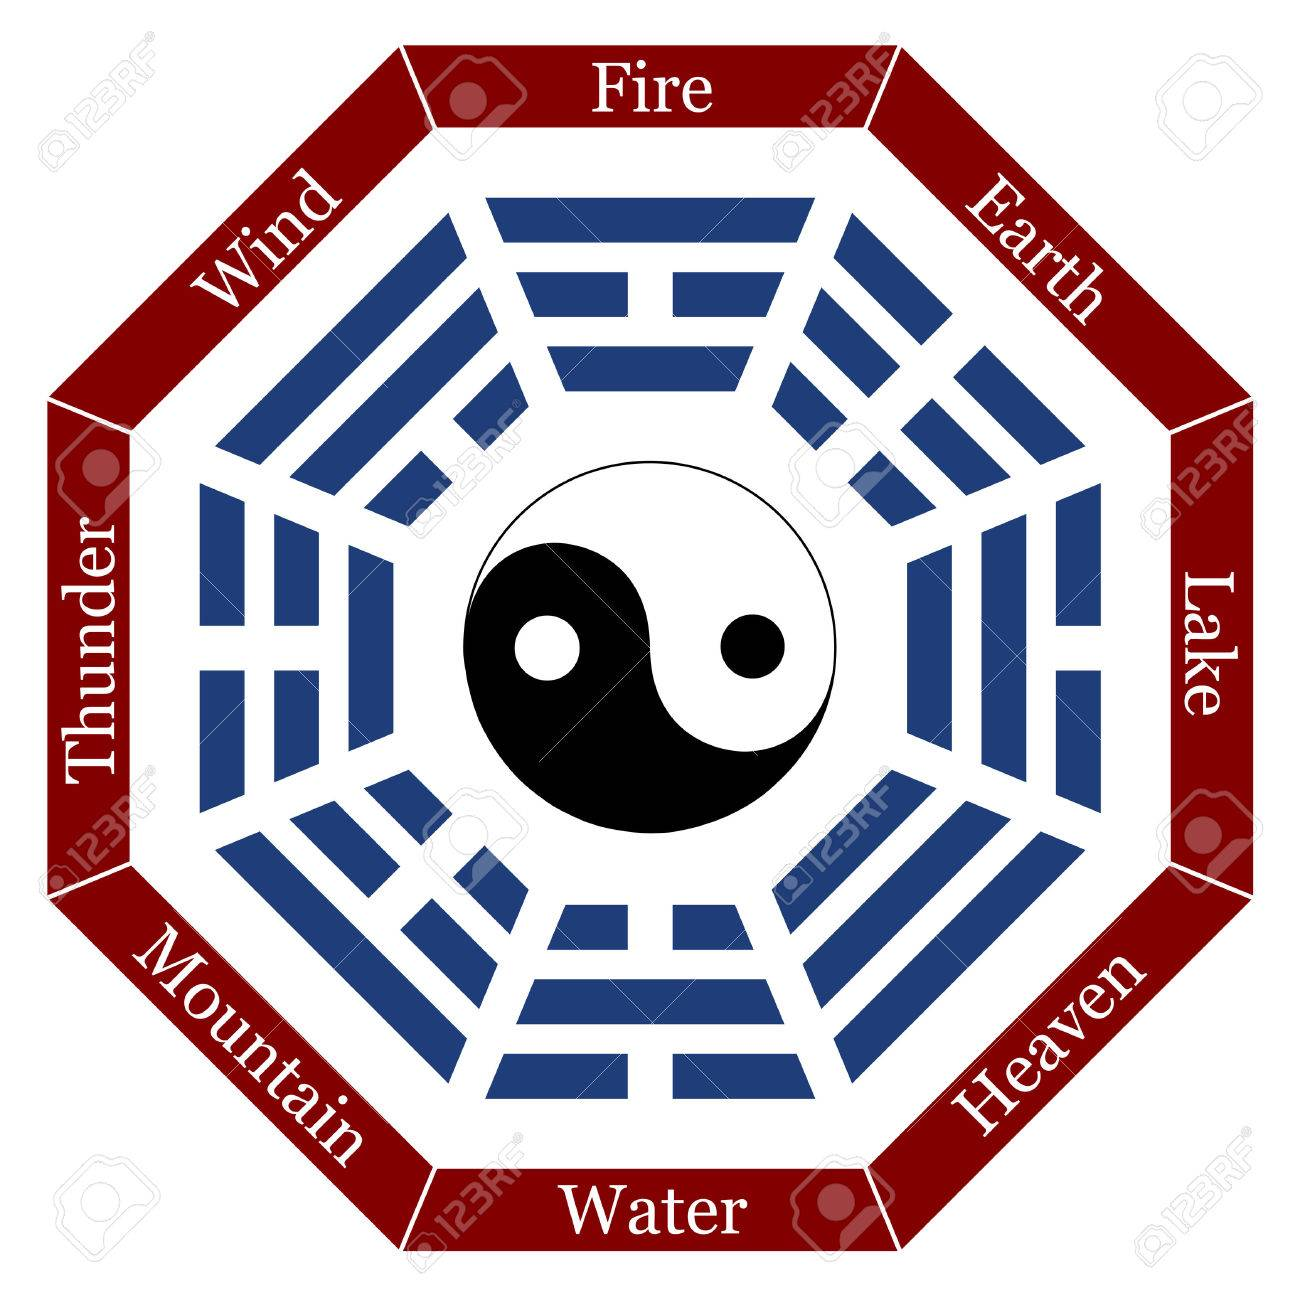 The I Ching Ying Yang And 8 Trigrams Smart Chinese Pinyin Teacher